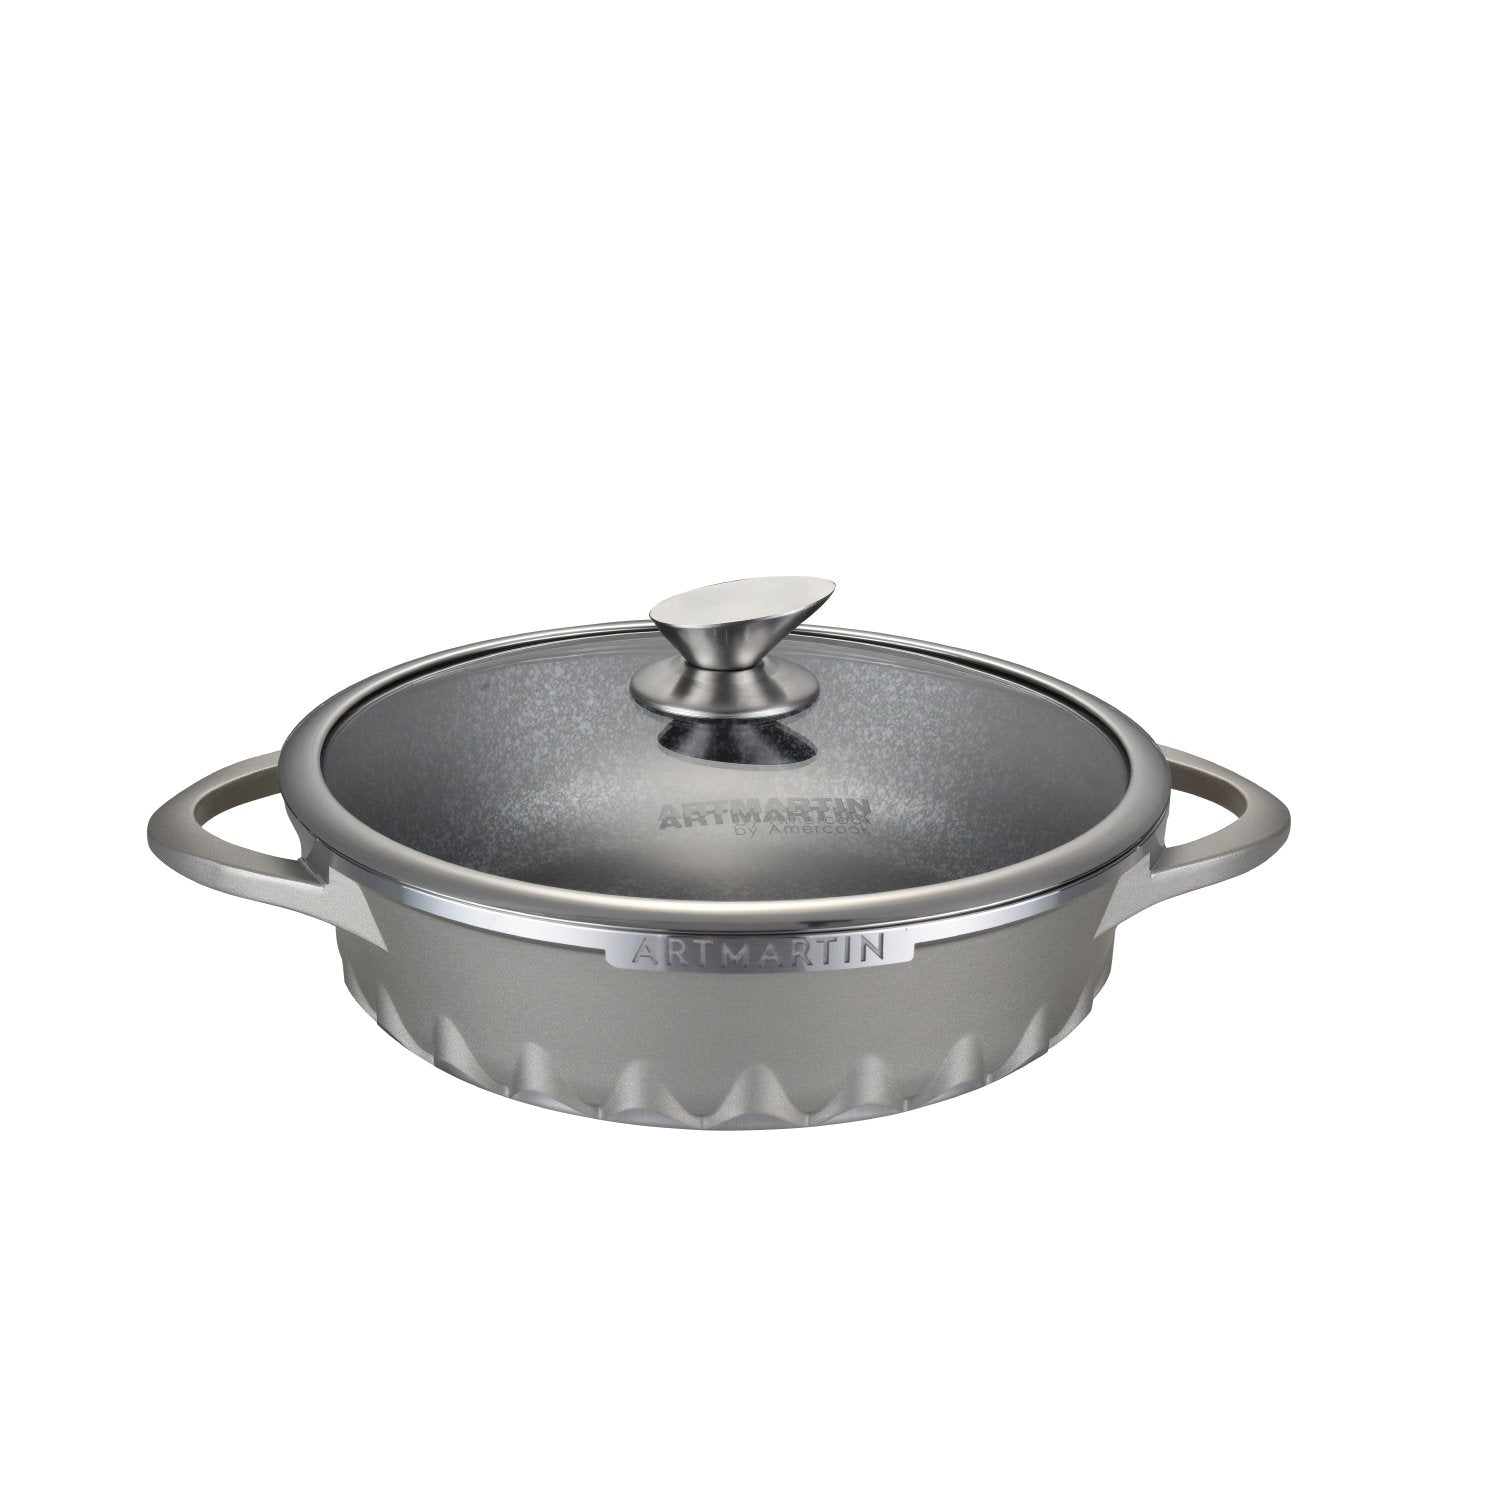 Non-Stick Ceramic Coated Die-Cast Aluminum Round Low Casserole Pot & Lid with Induction Bottom - 11 inch